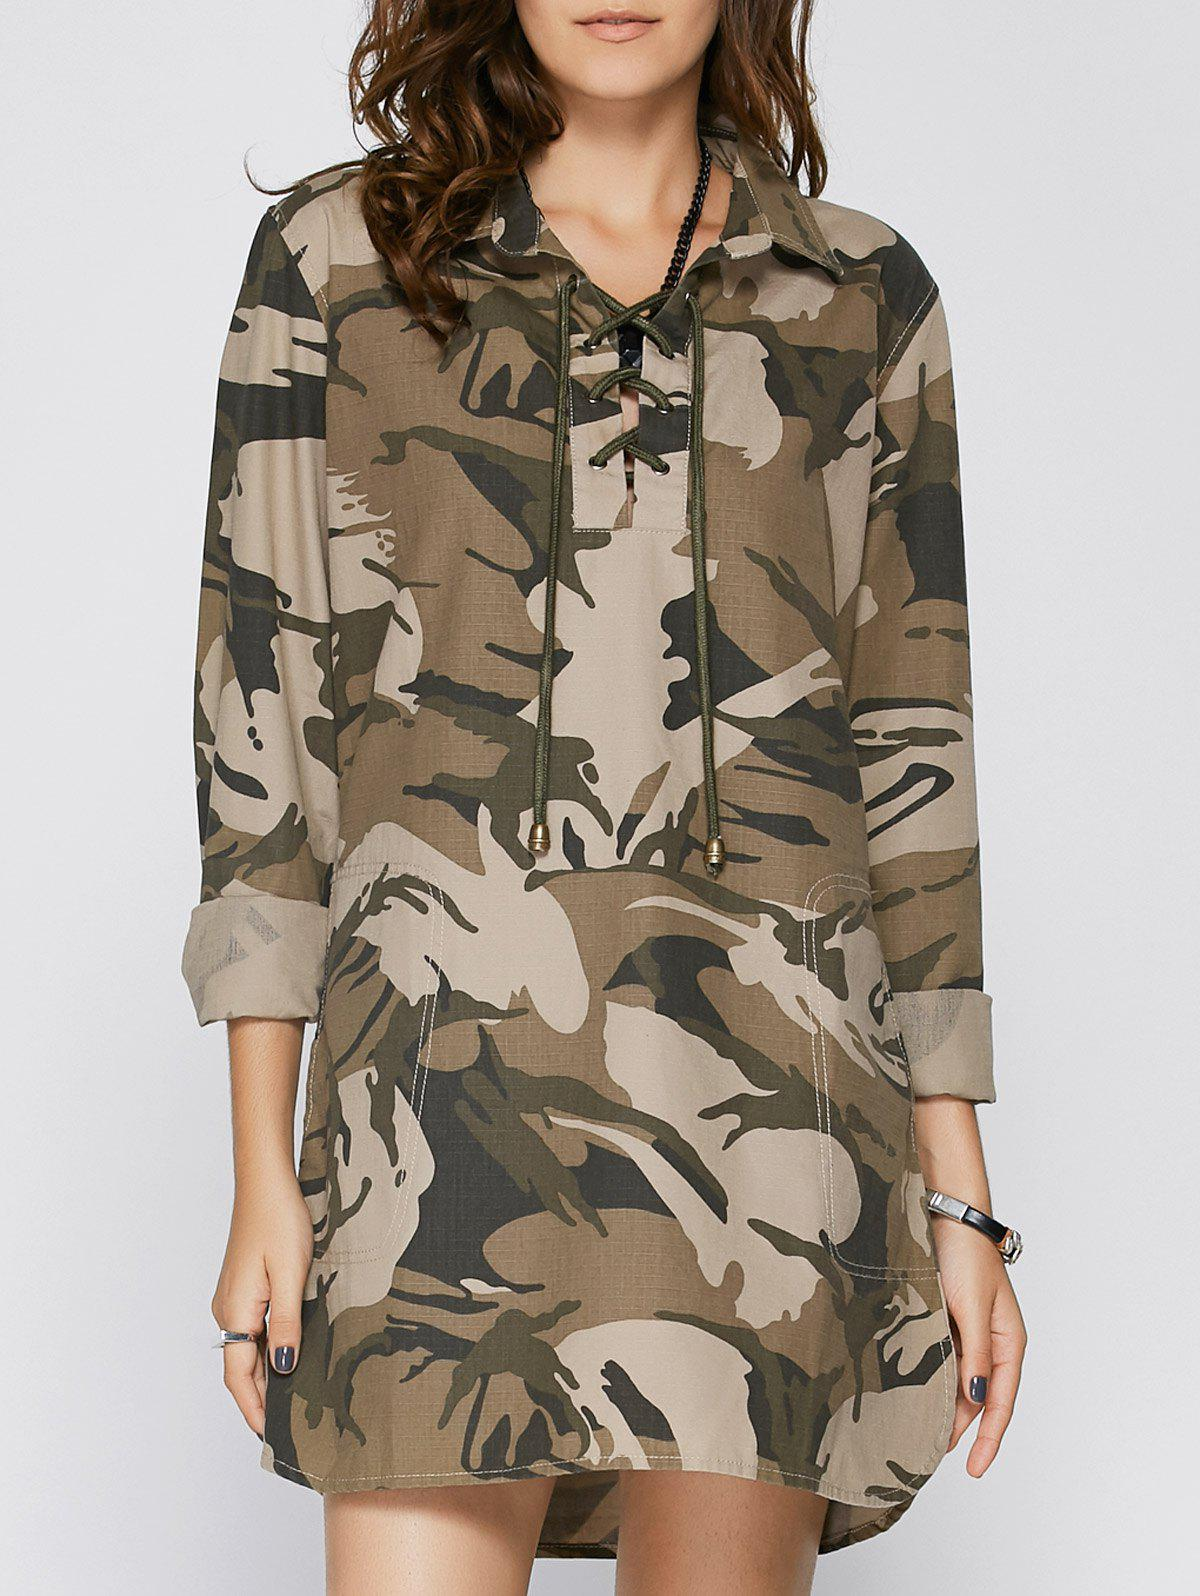 Stylish Women's Shirt Collar Long Sleeve Lace-Up Camo Dress - CAMOUFLAGE S